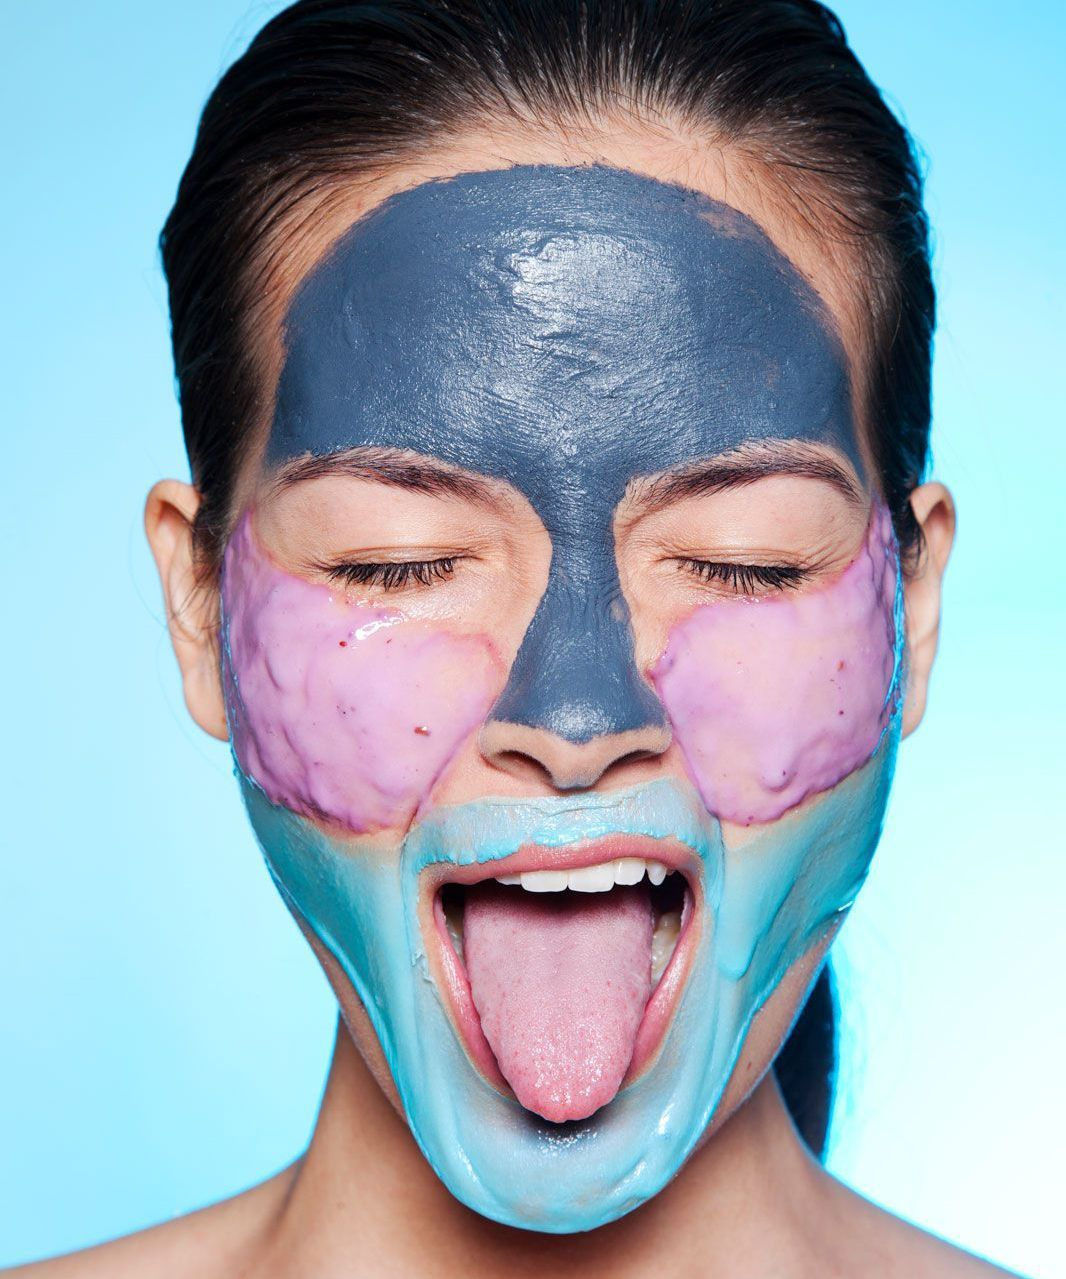 Korean Multi Masking Beauty Trend   We break down the Korean beauty trend of mixing multiple face masks for the best skin-care results. #refinery29 http://www.refinery29.com/korean-multi-masking-beauty-trend